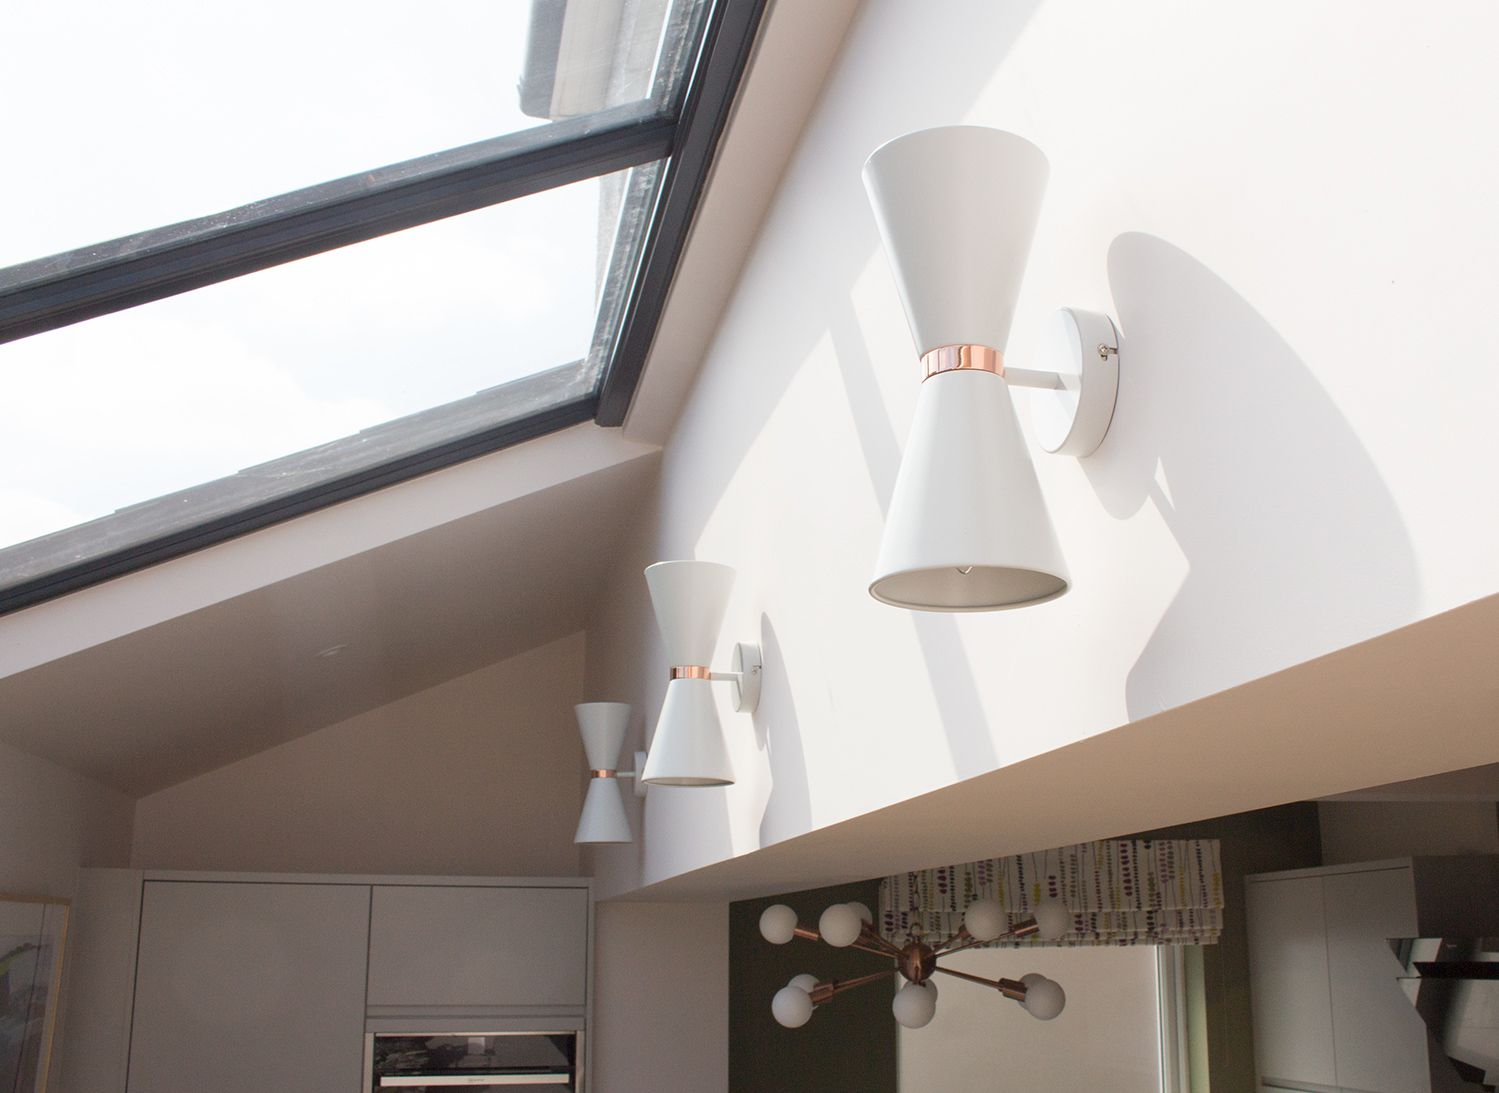 A photo of the three wall lights in the extension area, with the glass roof above.